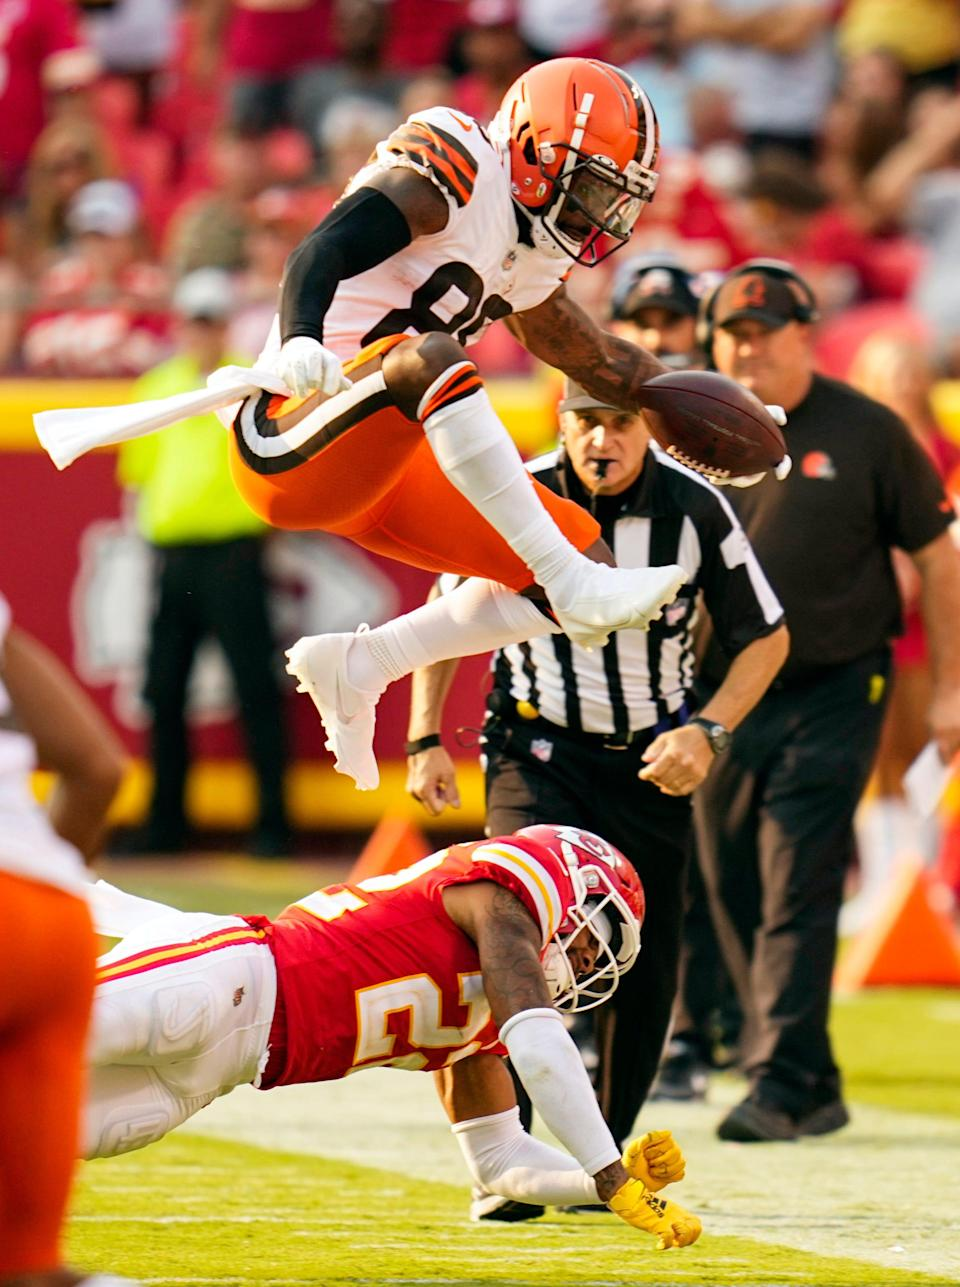 In the Browns' opener, wide receiver Jarvis Landry had five catches on five targets for 71 yards and rushed twice for 13 yards, including a 5-yard touchdown.